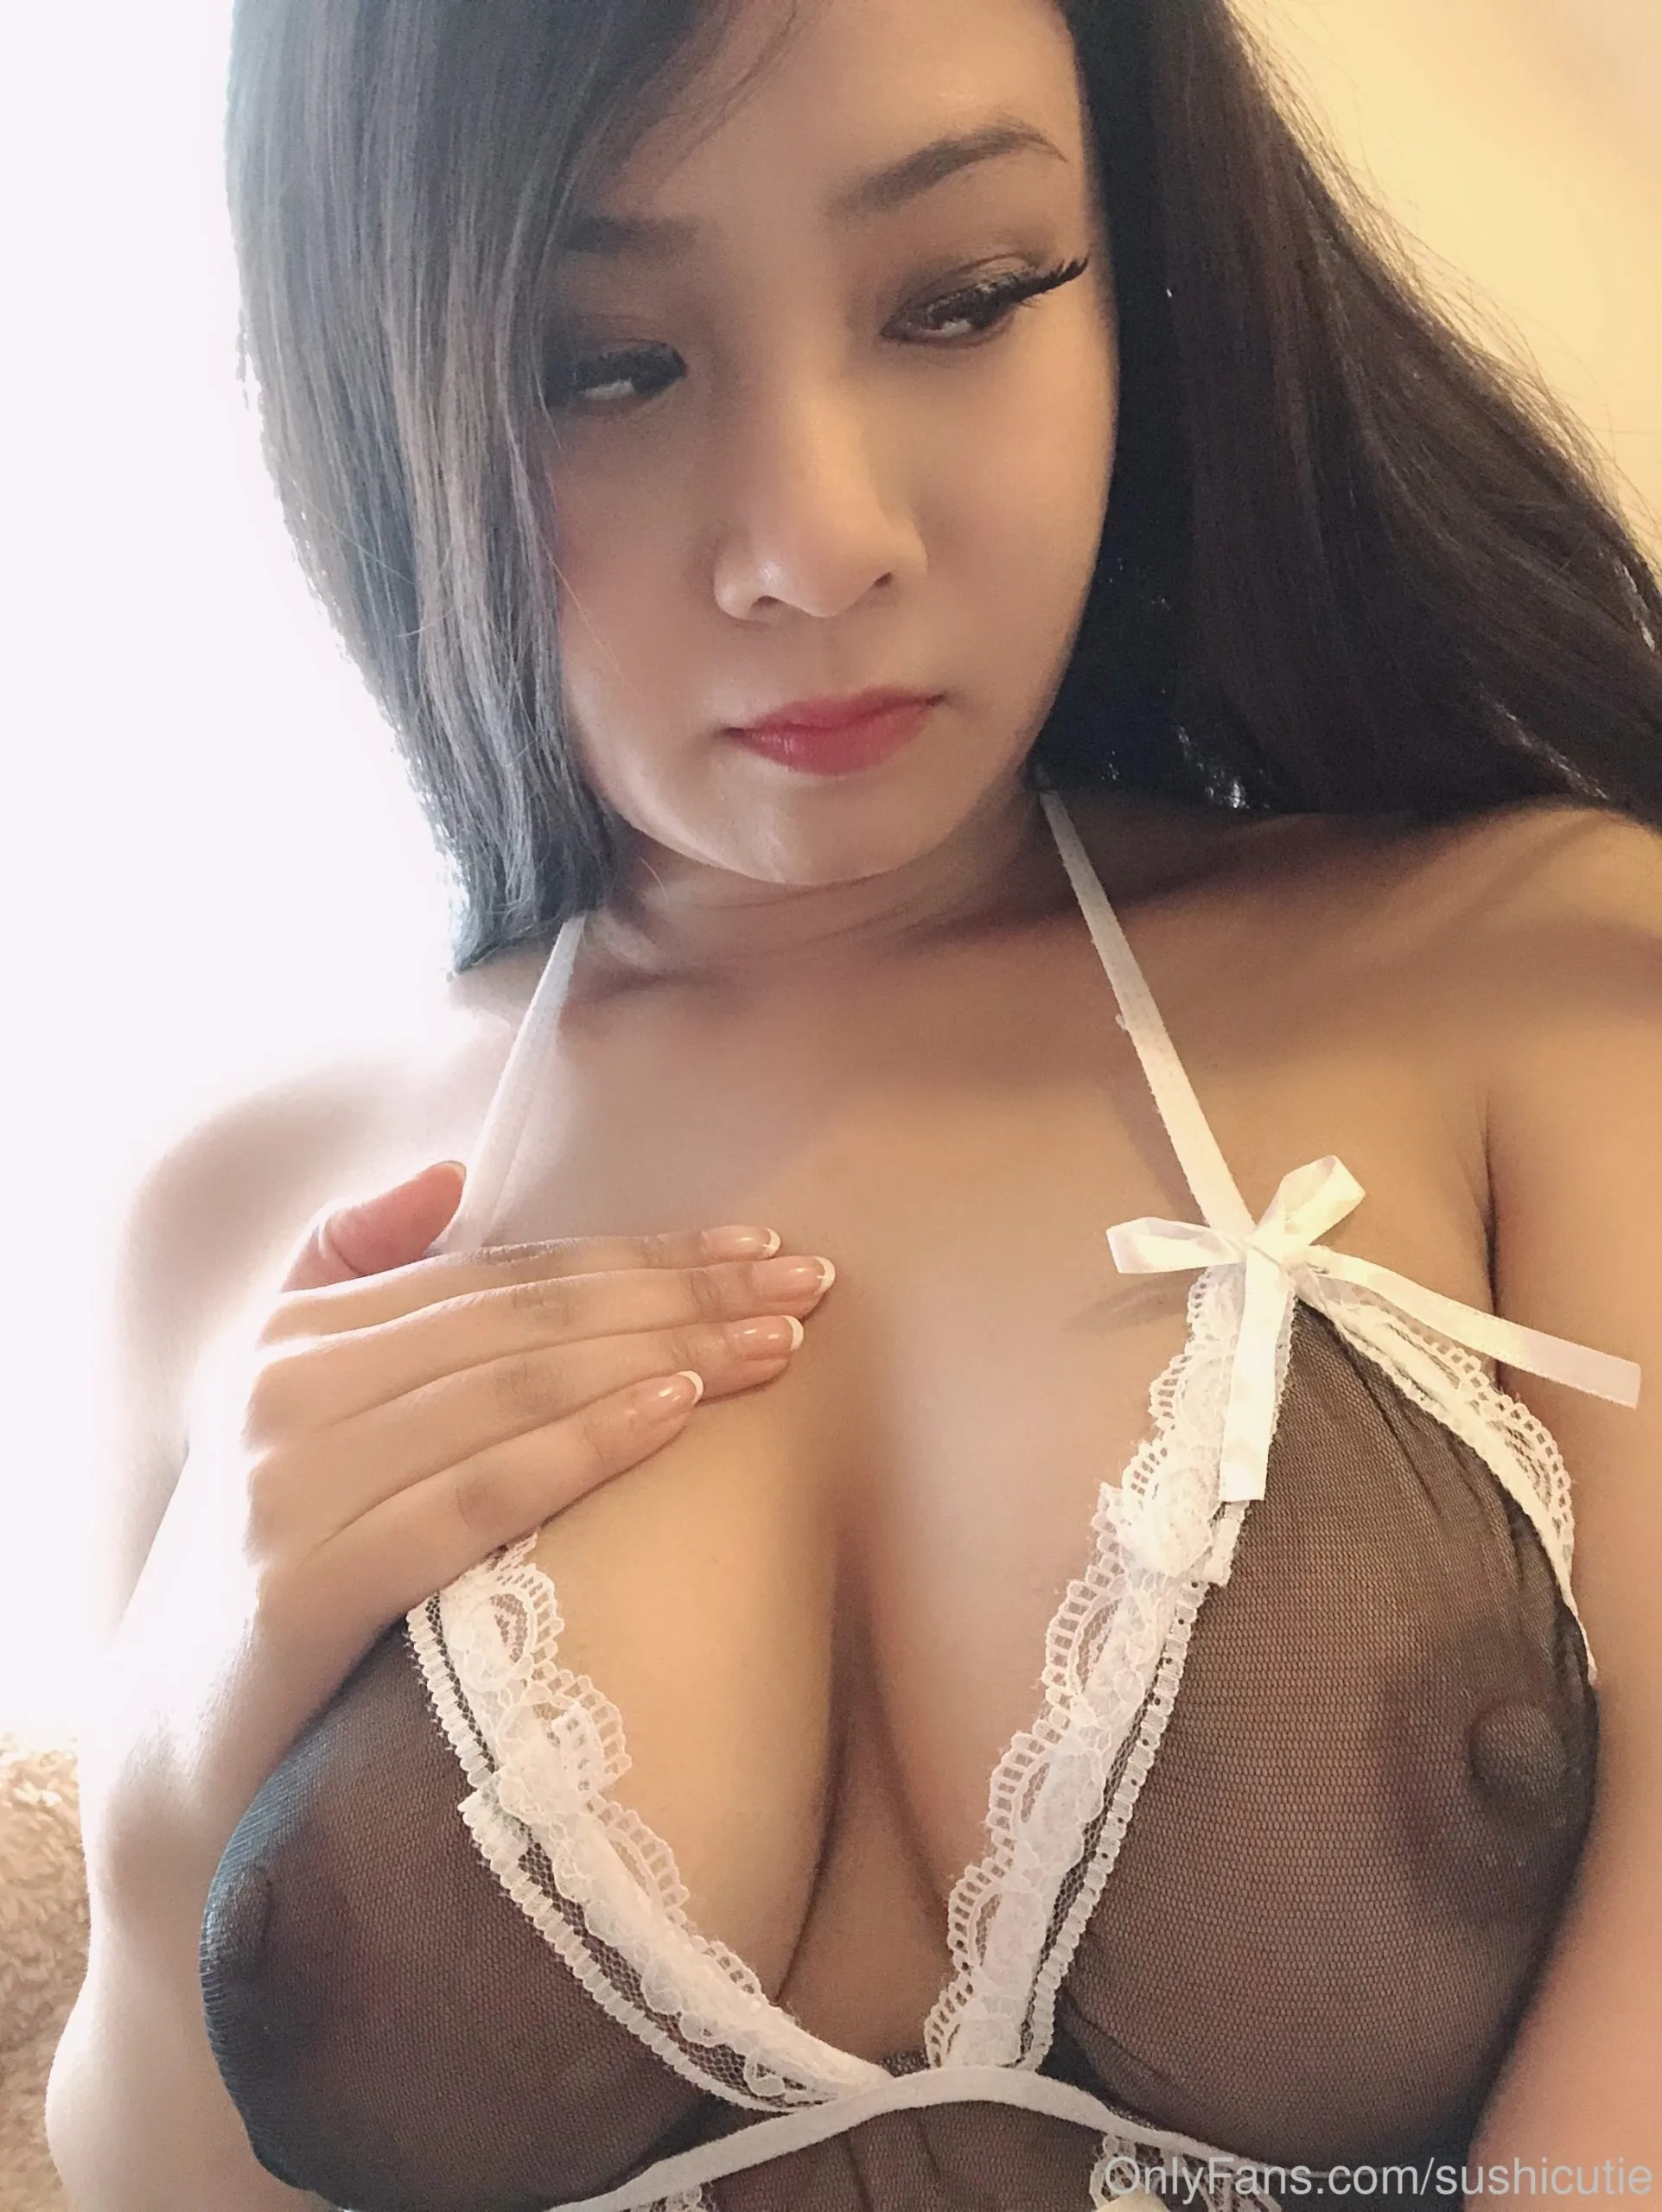 Sushicutie Onlyfans Nudes Leaks (60 photos)